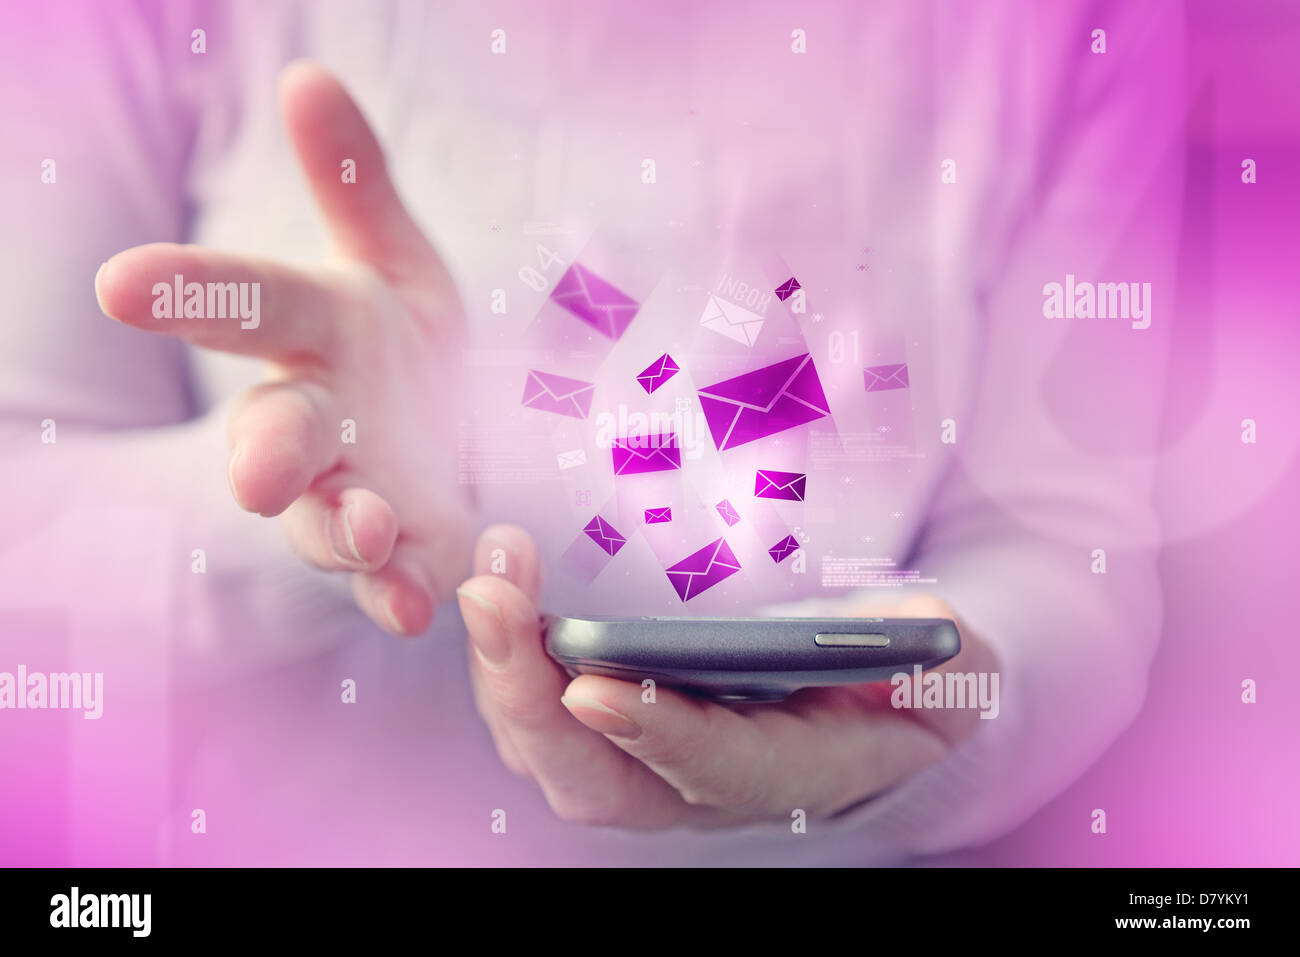 Woman is typing text message on her smartphone, close up image with focus on phone device and e-mail inbox envelopes. - Stock Image